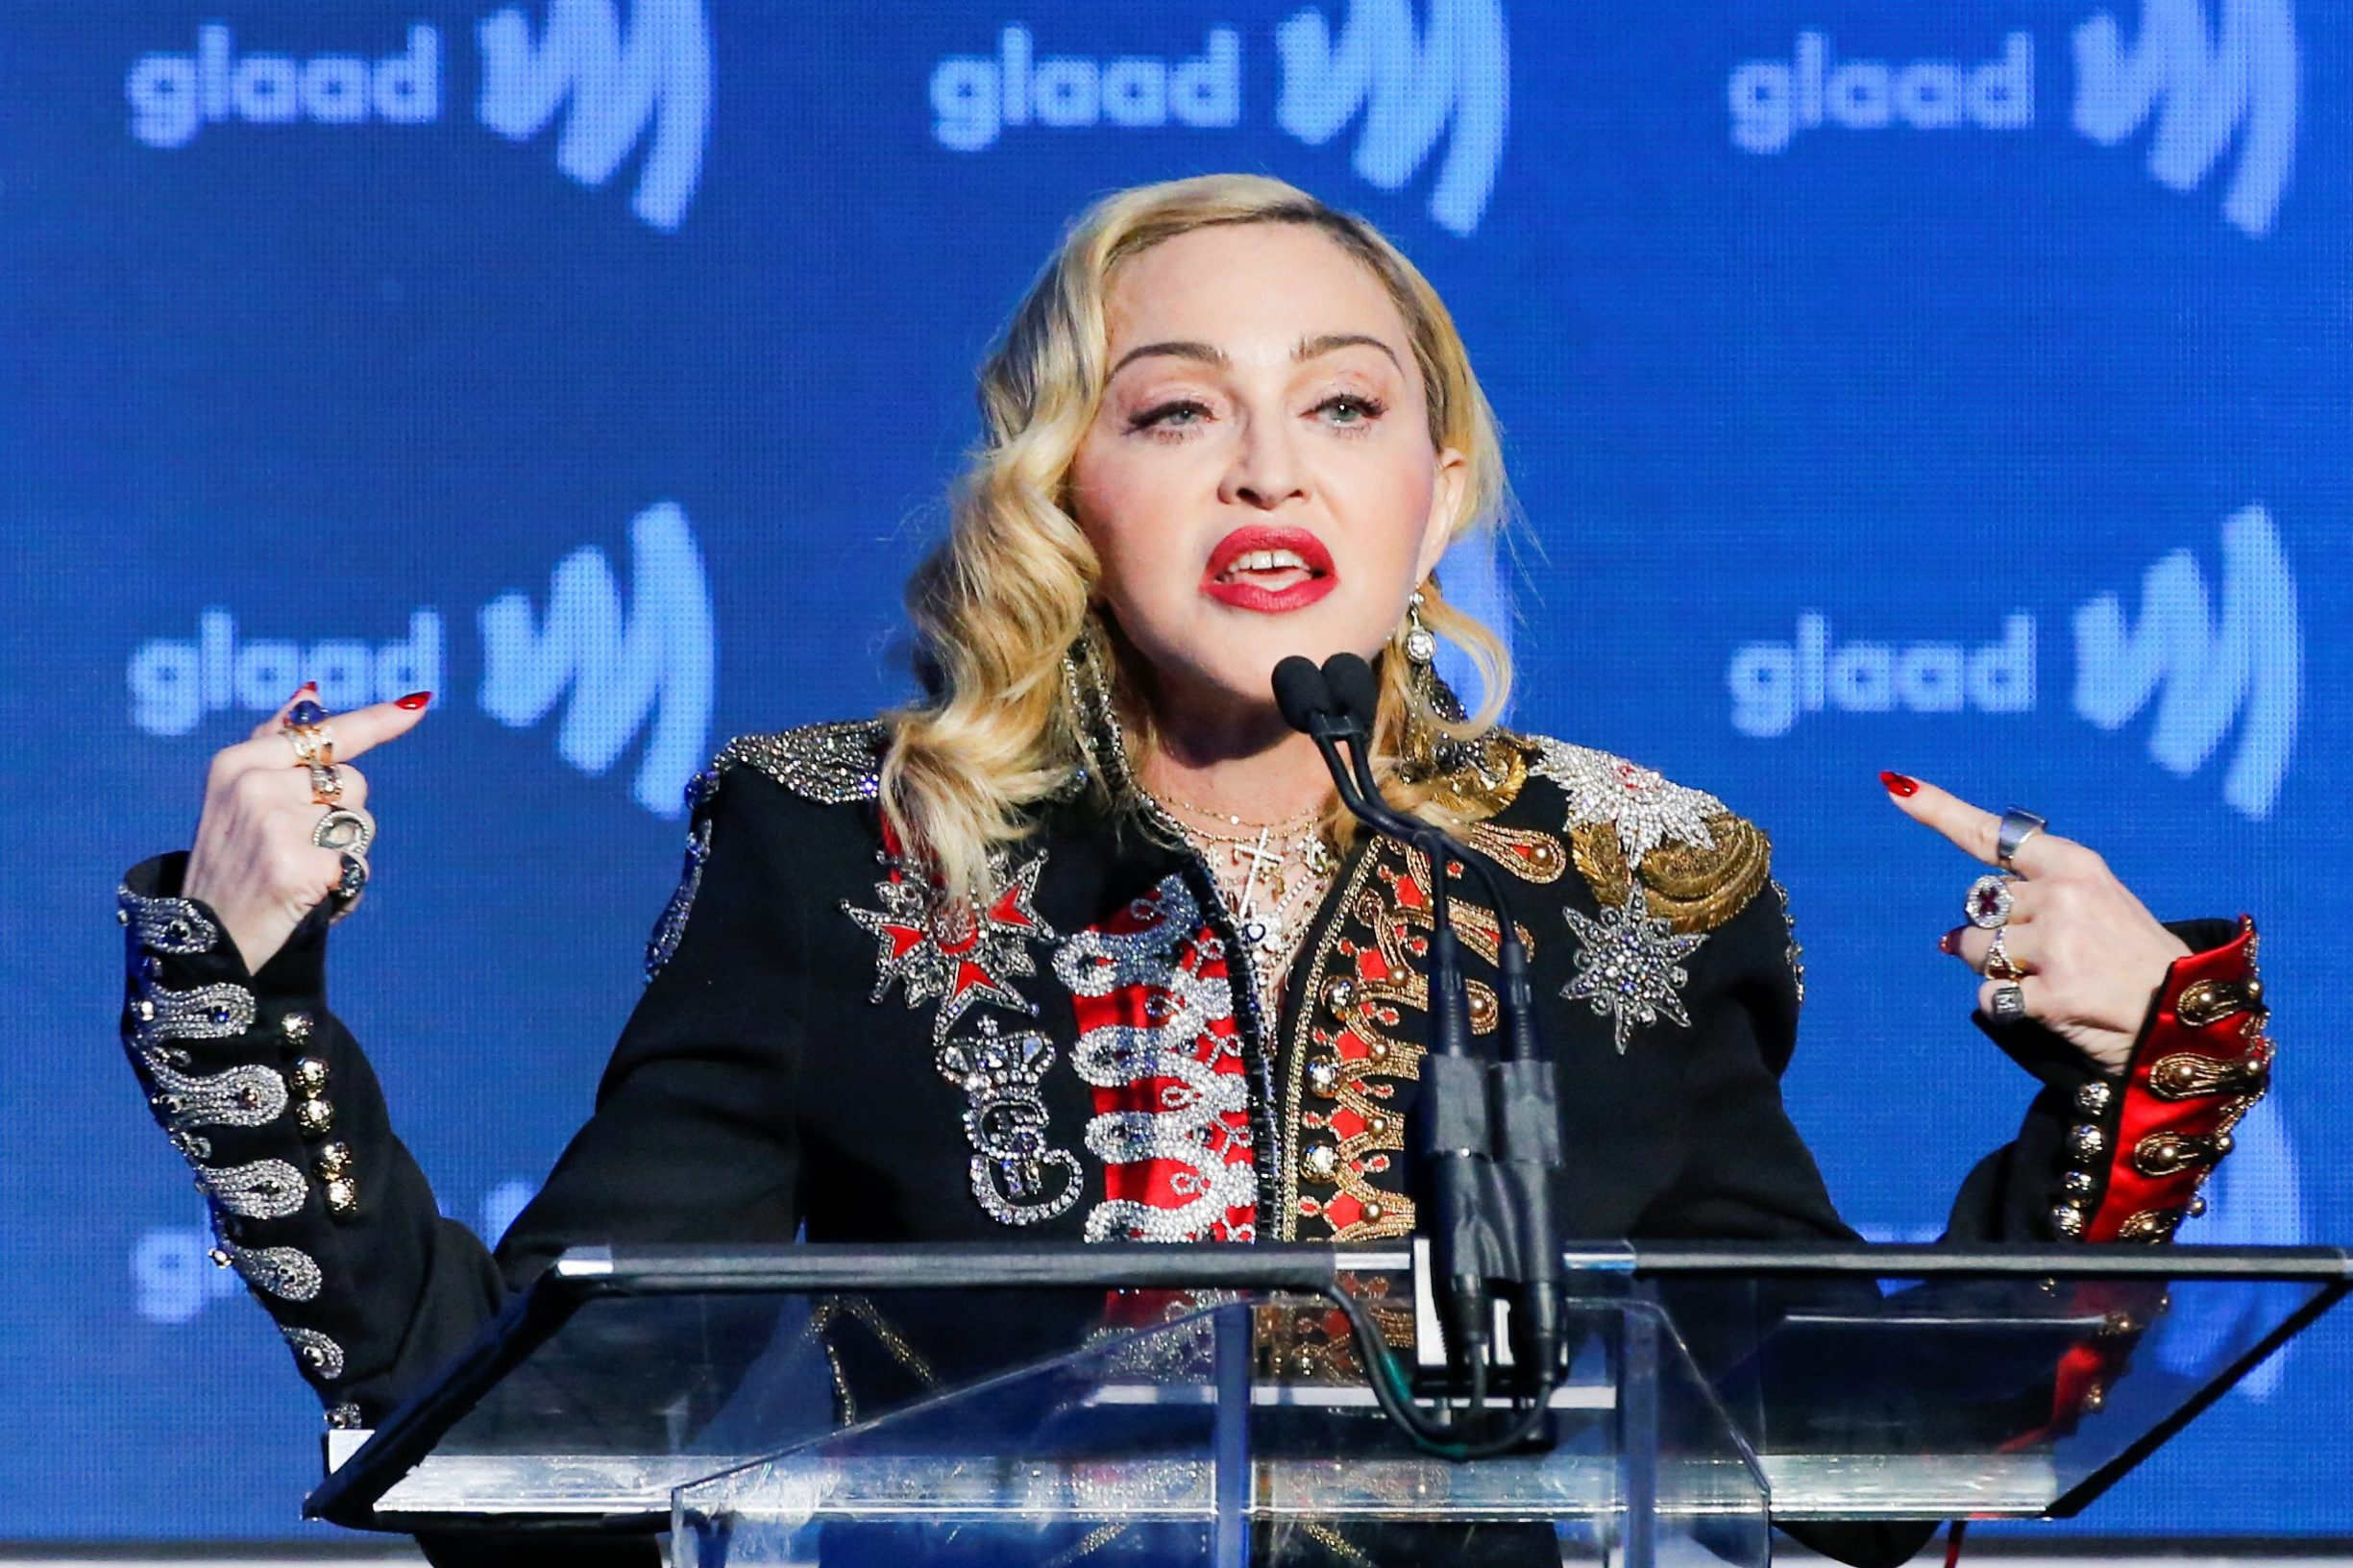 2019-05-05T023157Z_167322750_RC1D62A710D0_RTRMADP_3_AWARDS-GLAAD-MADONNA